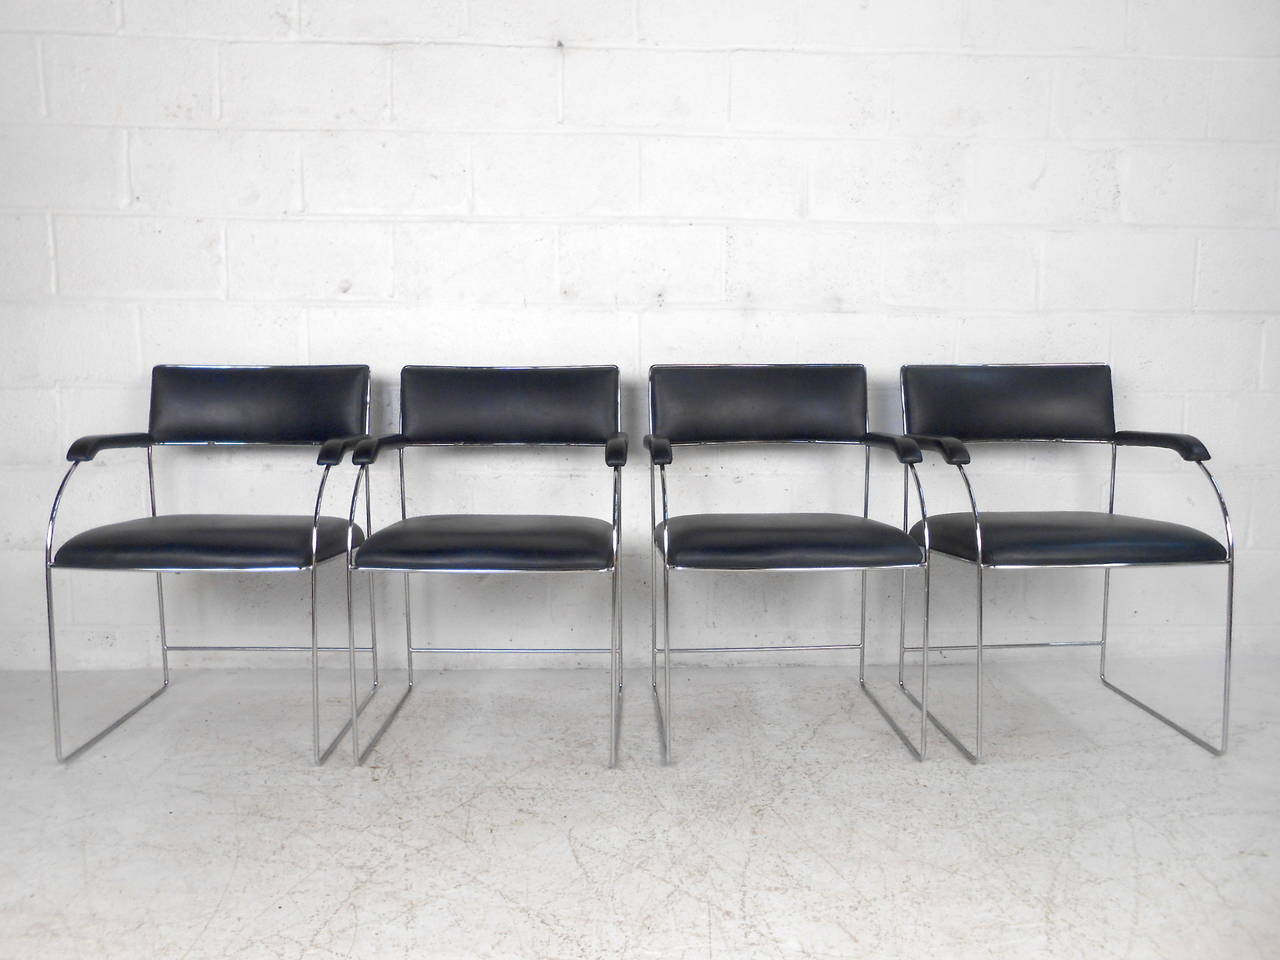 This set of midcentury dining chairs feature comfortable blue vinyl upholstery and a sturdy chrome tubular frame. A wonderful chrome rod frame with sled legs and rounded arm rests with padding. Ideal matching set of four chairs makes a stylish